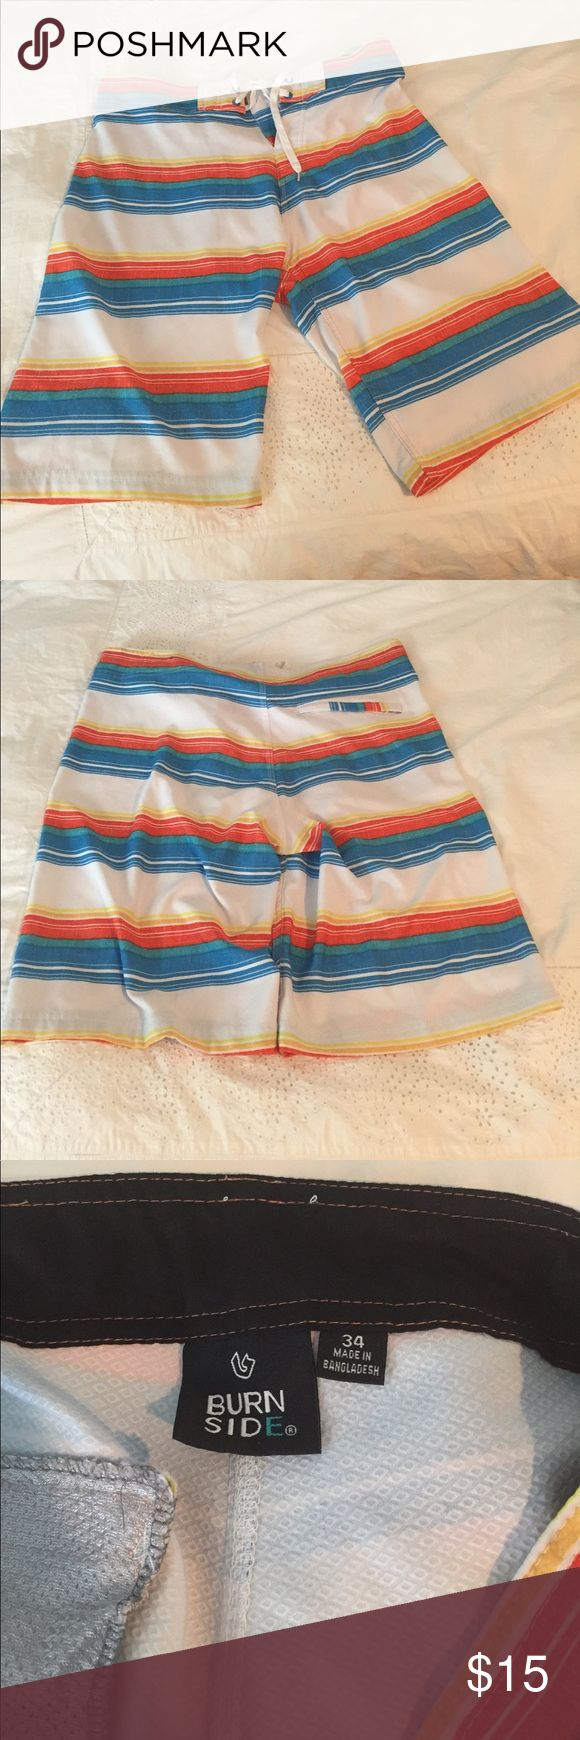 Burn Side Men's Bathing Suit. Board Shorts. 34. Men's Board Short Bathing Suit. Size 34. Burn Side is the brand. No mesh in the suit but it does have a back pocket. Worn a handful of times. Swim Board Shorts